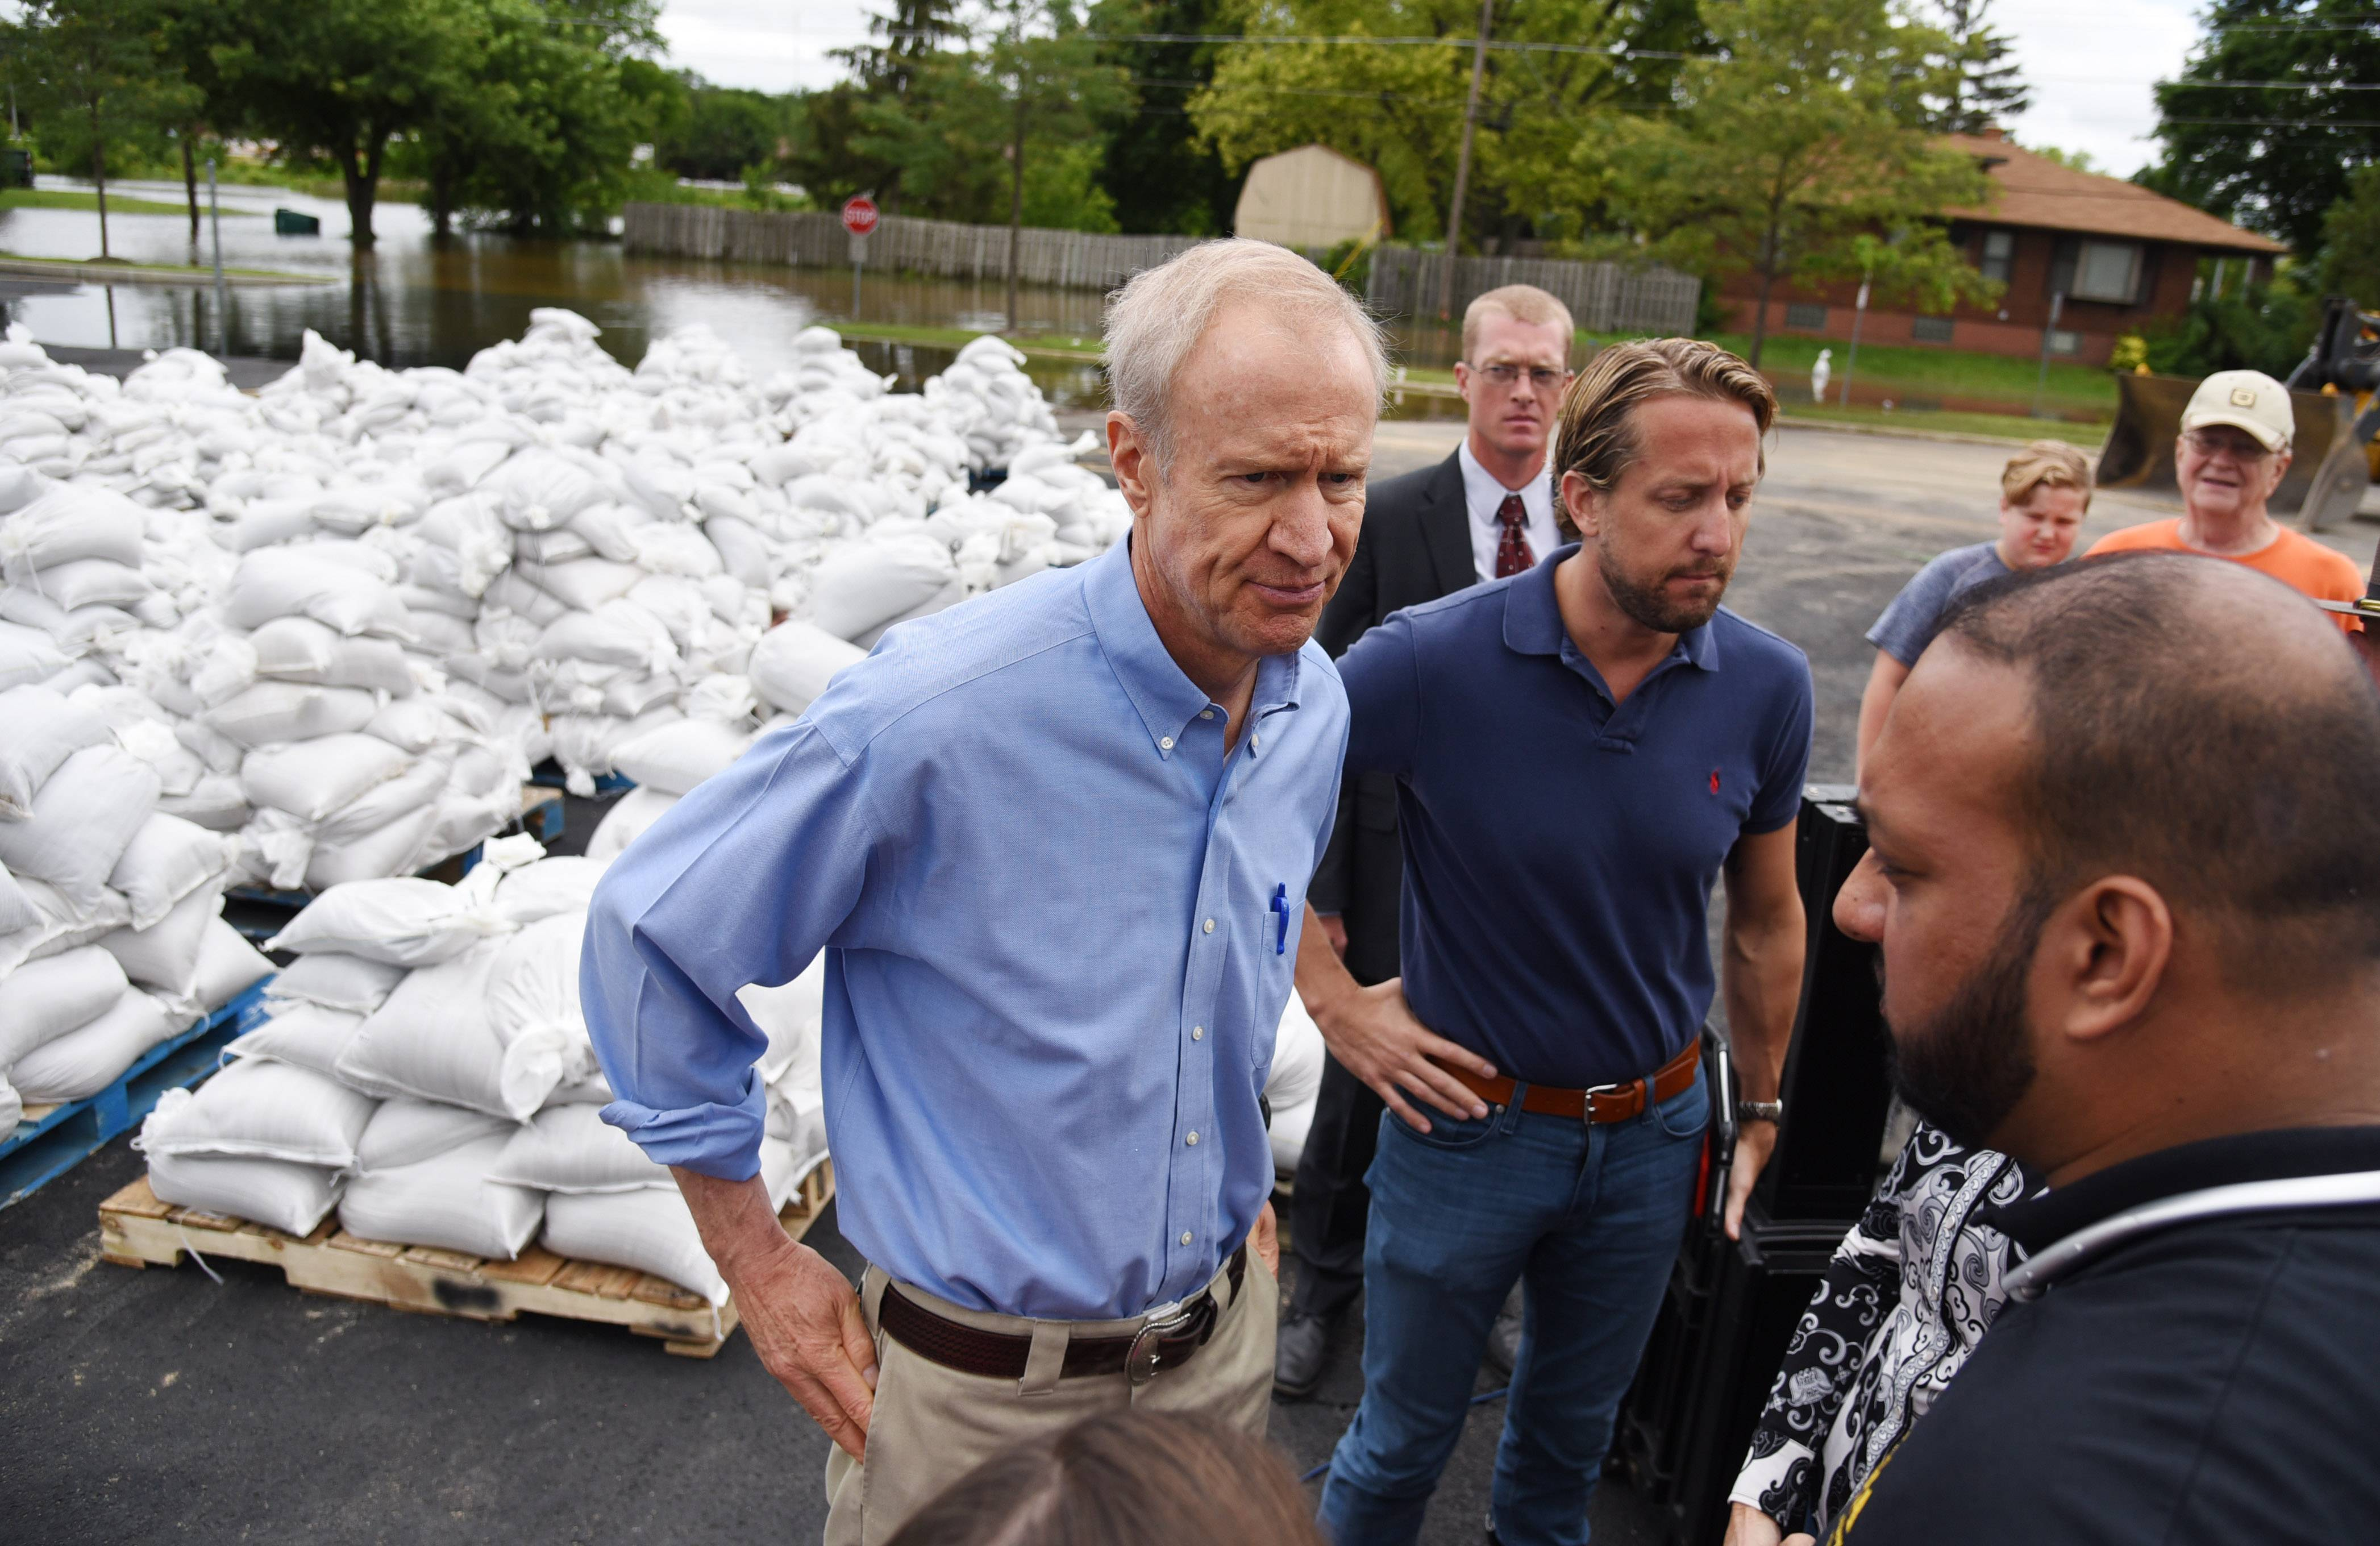 Paul Valade/pvalade@dailyherald.comIllinois Gov. Bruce Rauner, left, pauses near hundreds of sandbags and the flooded McClure Avenue, back left, with Lake County Board Chairman Aaron Lawlor and IEMA Director James Joseph, right, Friday during a stop in Gurnee to survey flood damage.